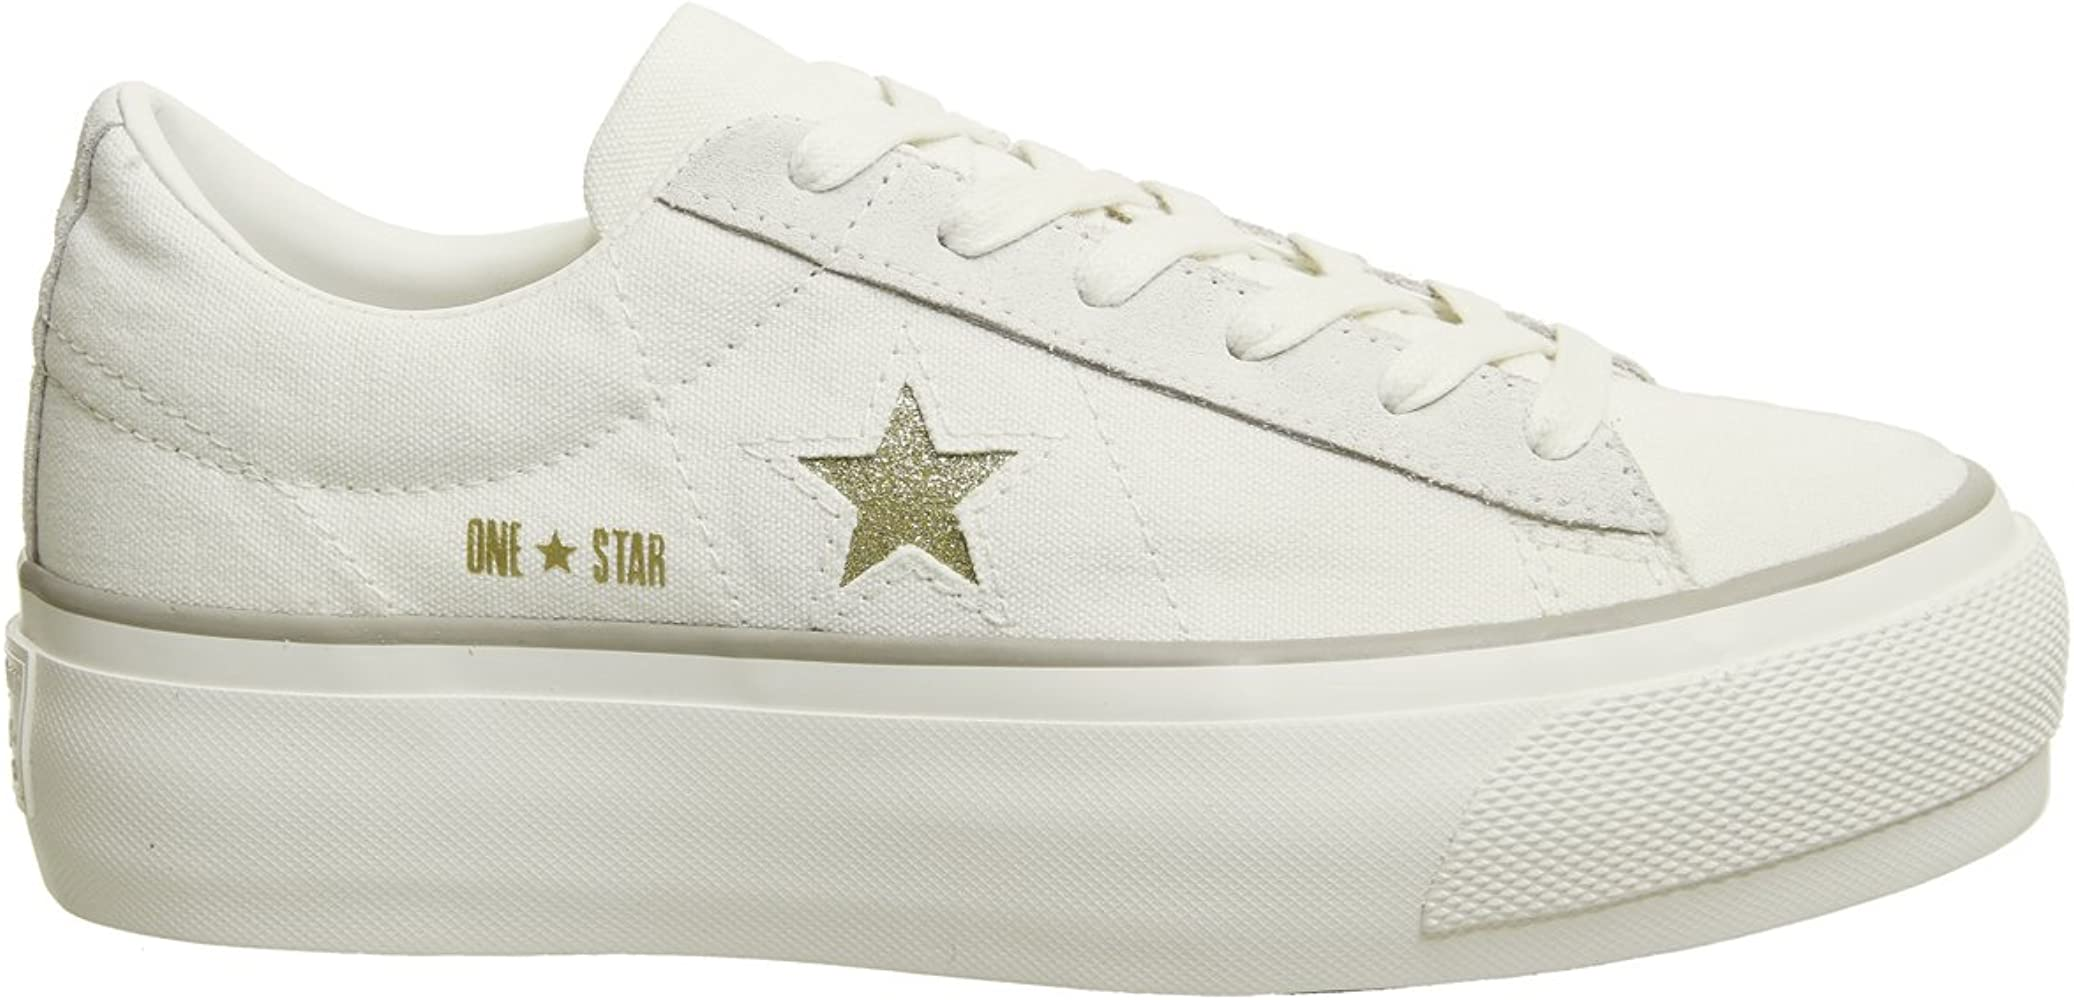 one star converse mujer